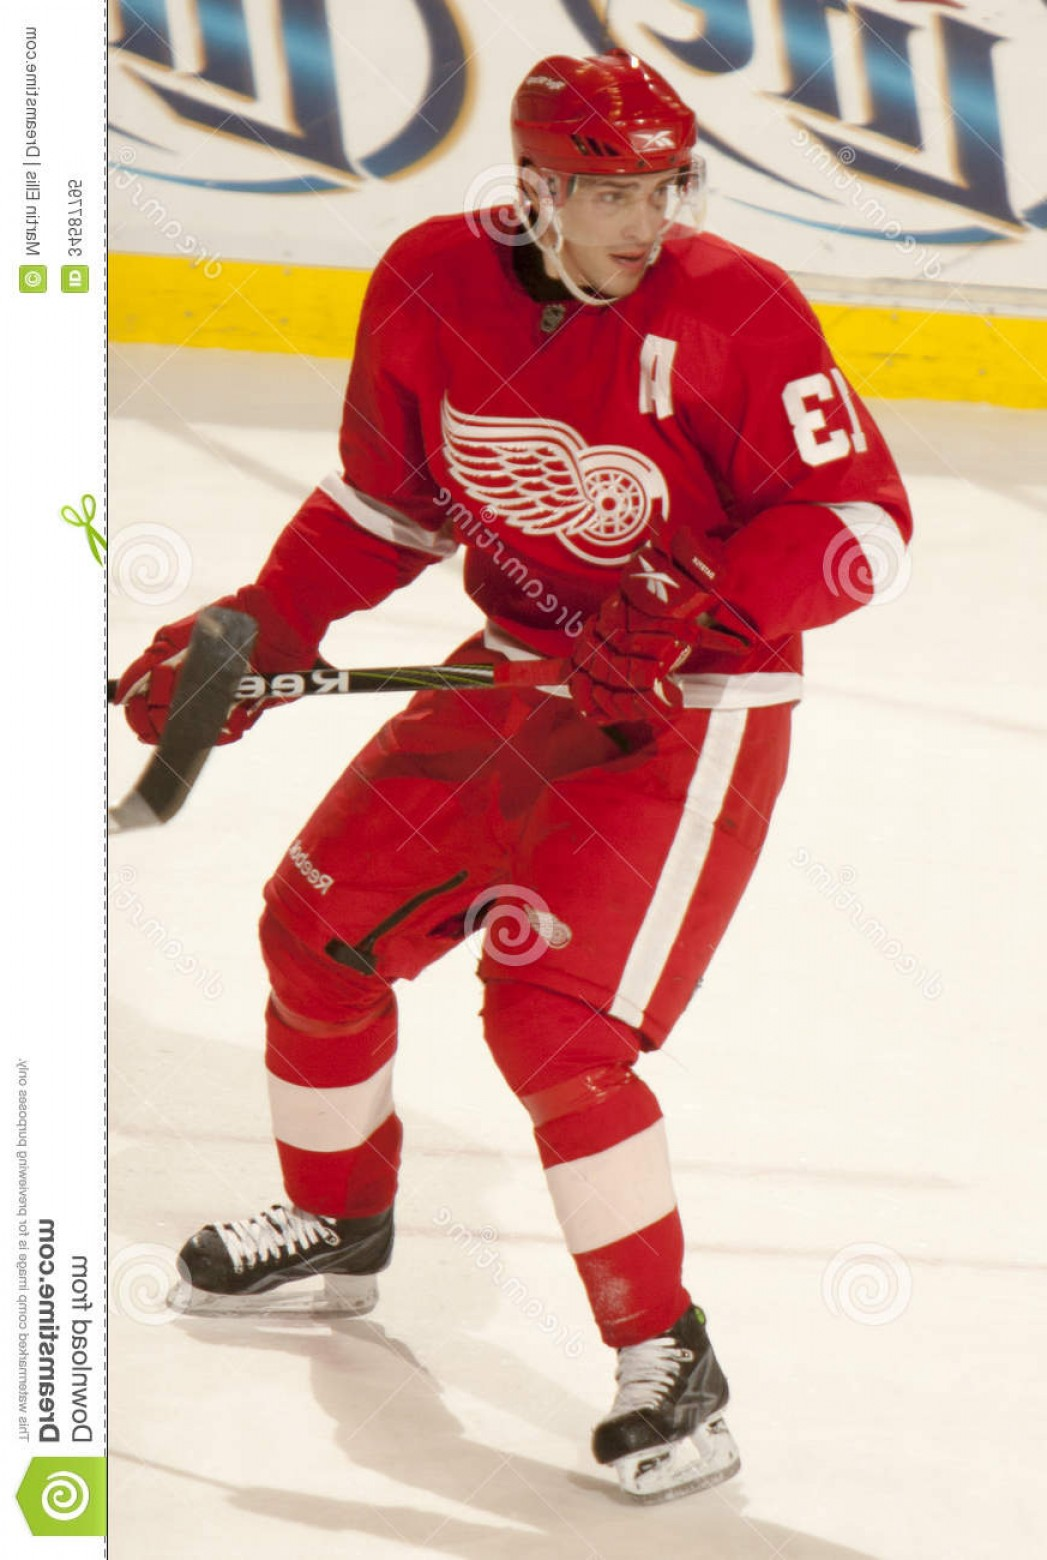 Detroit Red Wings Vector Art: Royalty Free Stock Photo Pavel Datsyuk Detroit Red Wings Watches Play Game Against Colorado Rockies Joe Louis Arena Image